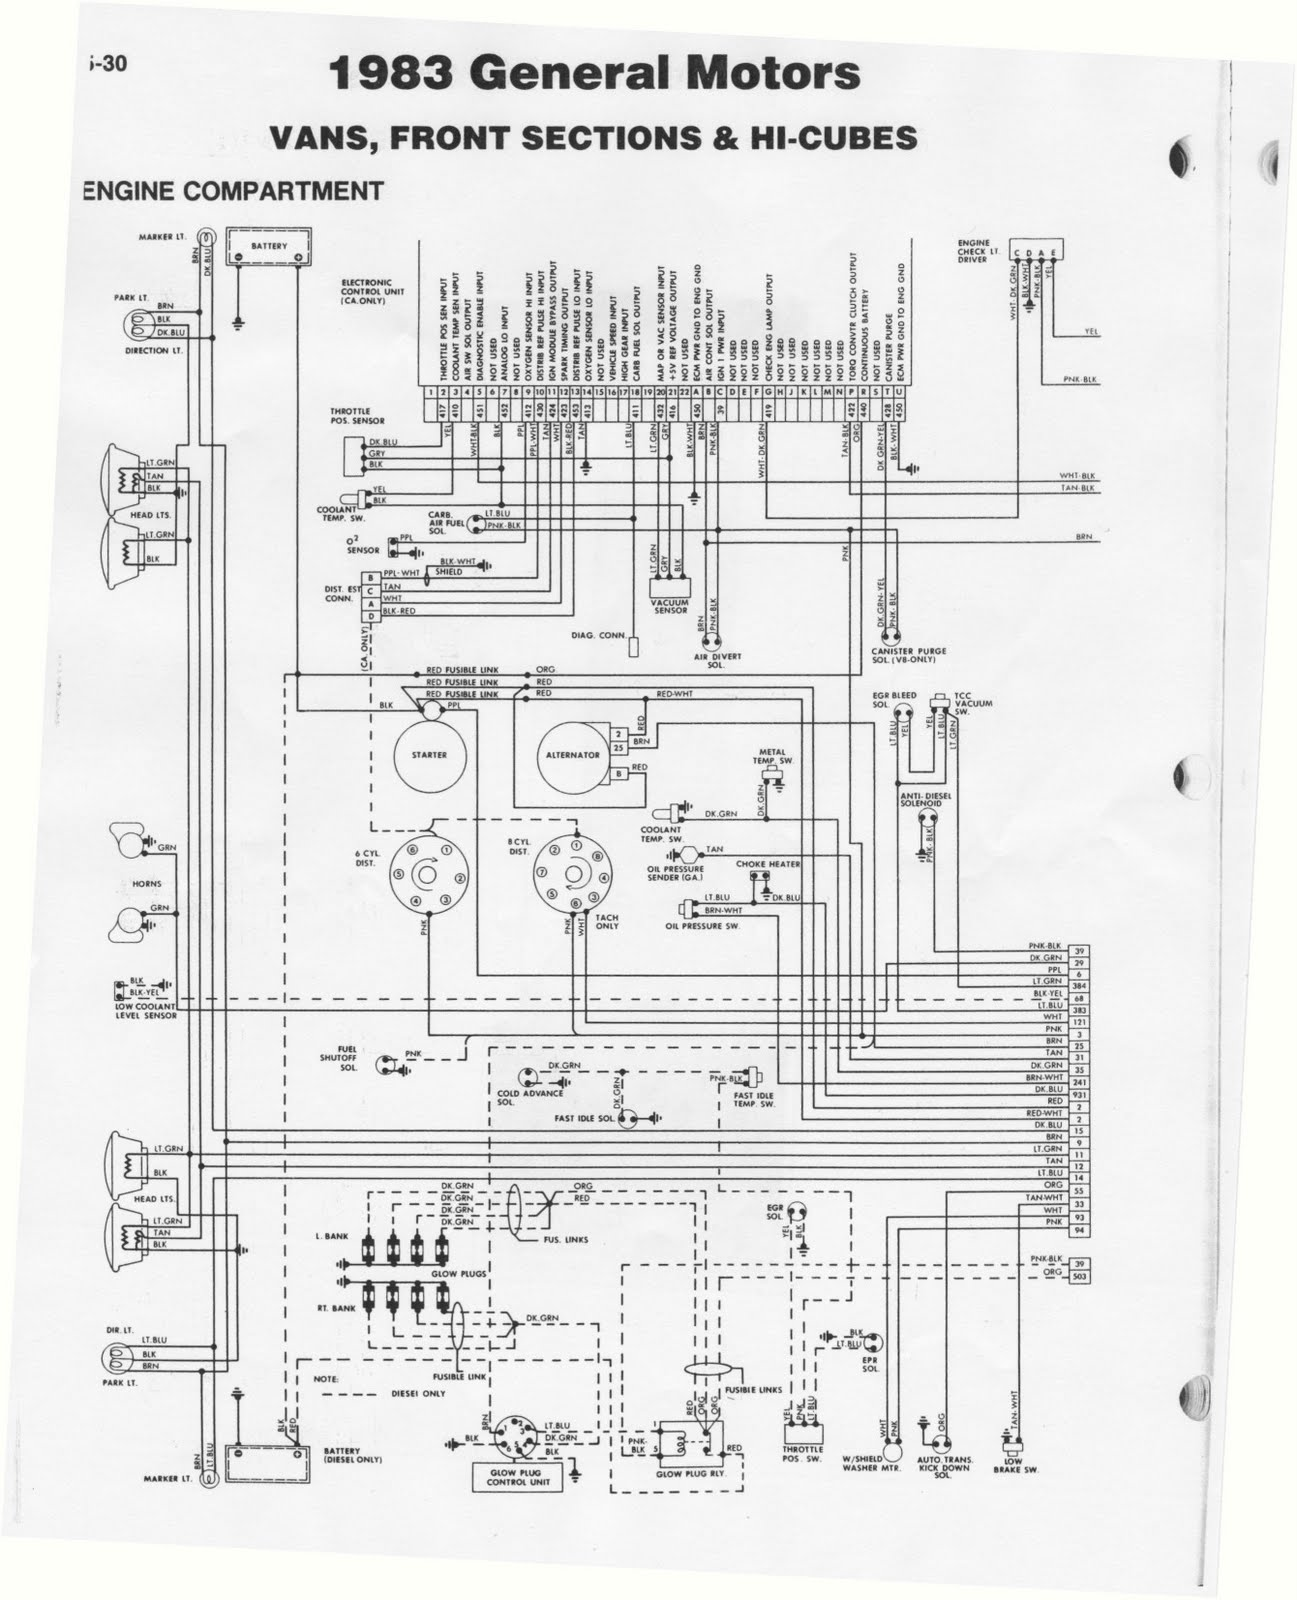 unique ford f 350 wiring diagram together with 1987 ford e 350 wiring diagram [ 1297 x 1600 Pixel ]